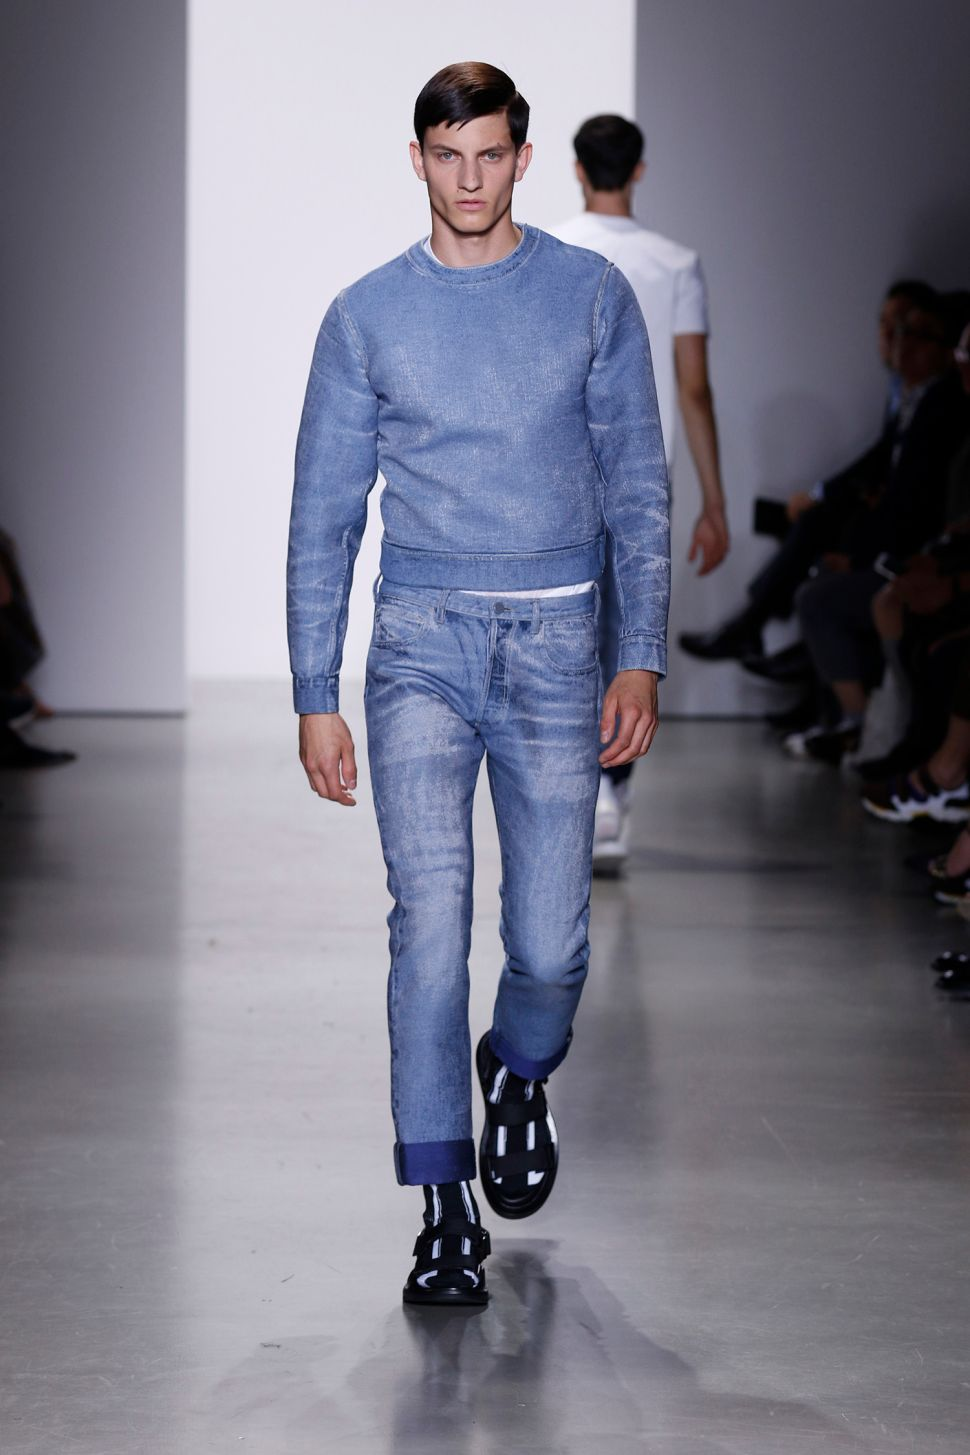 The Denim Trends Men Should Be Buying This Spring